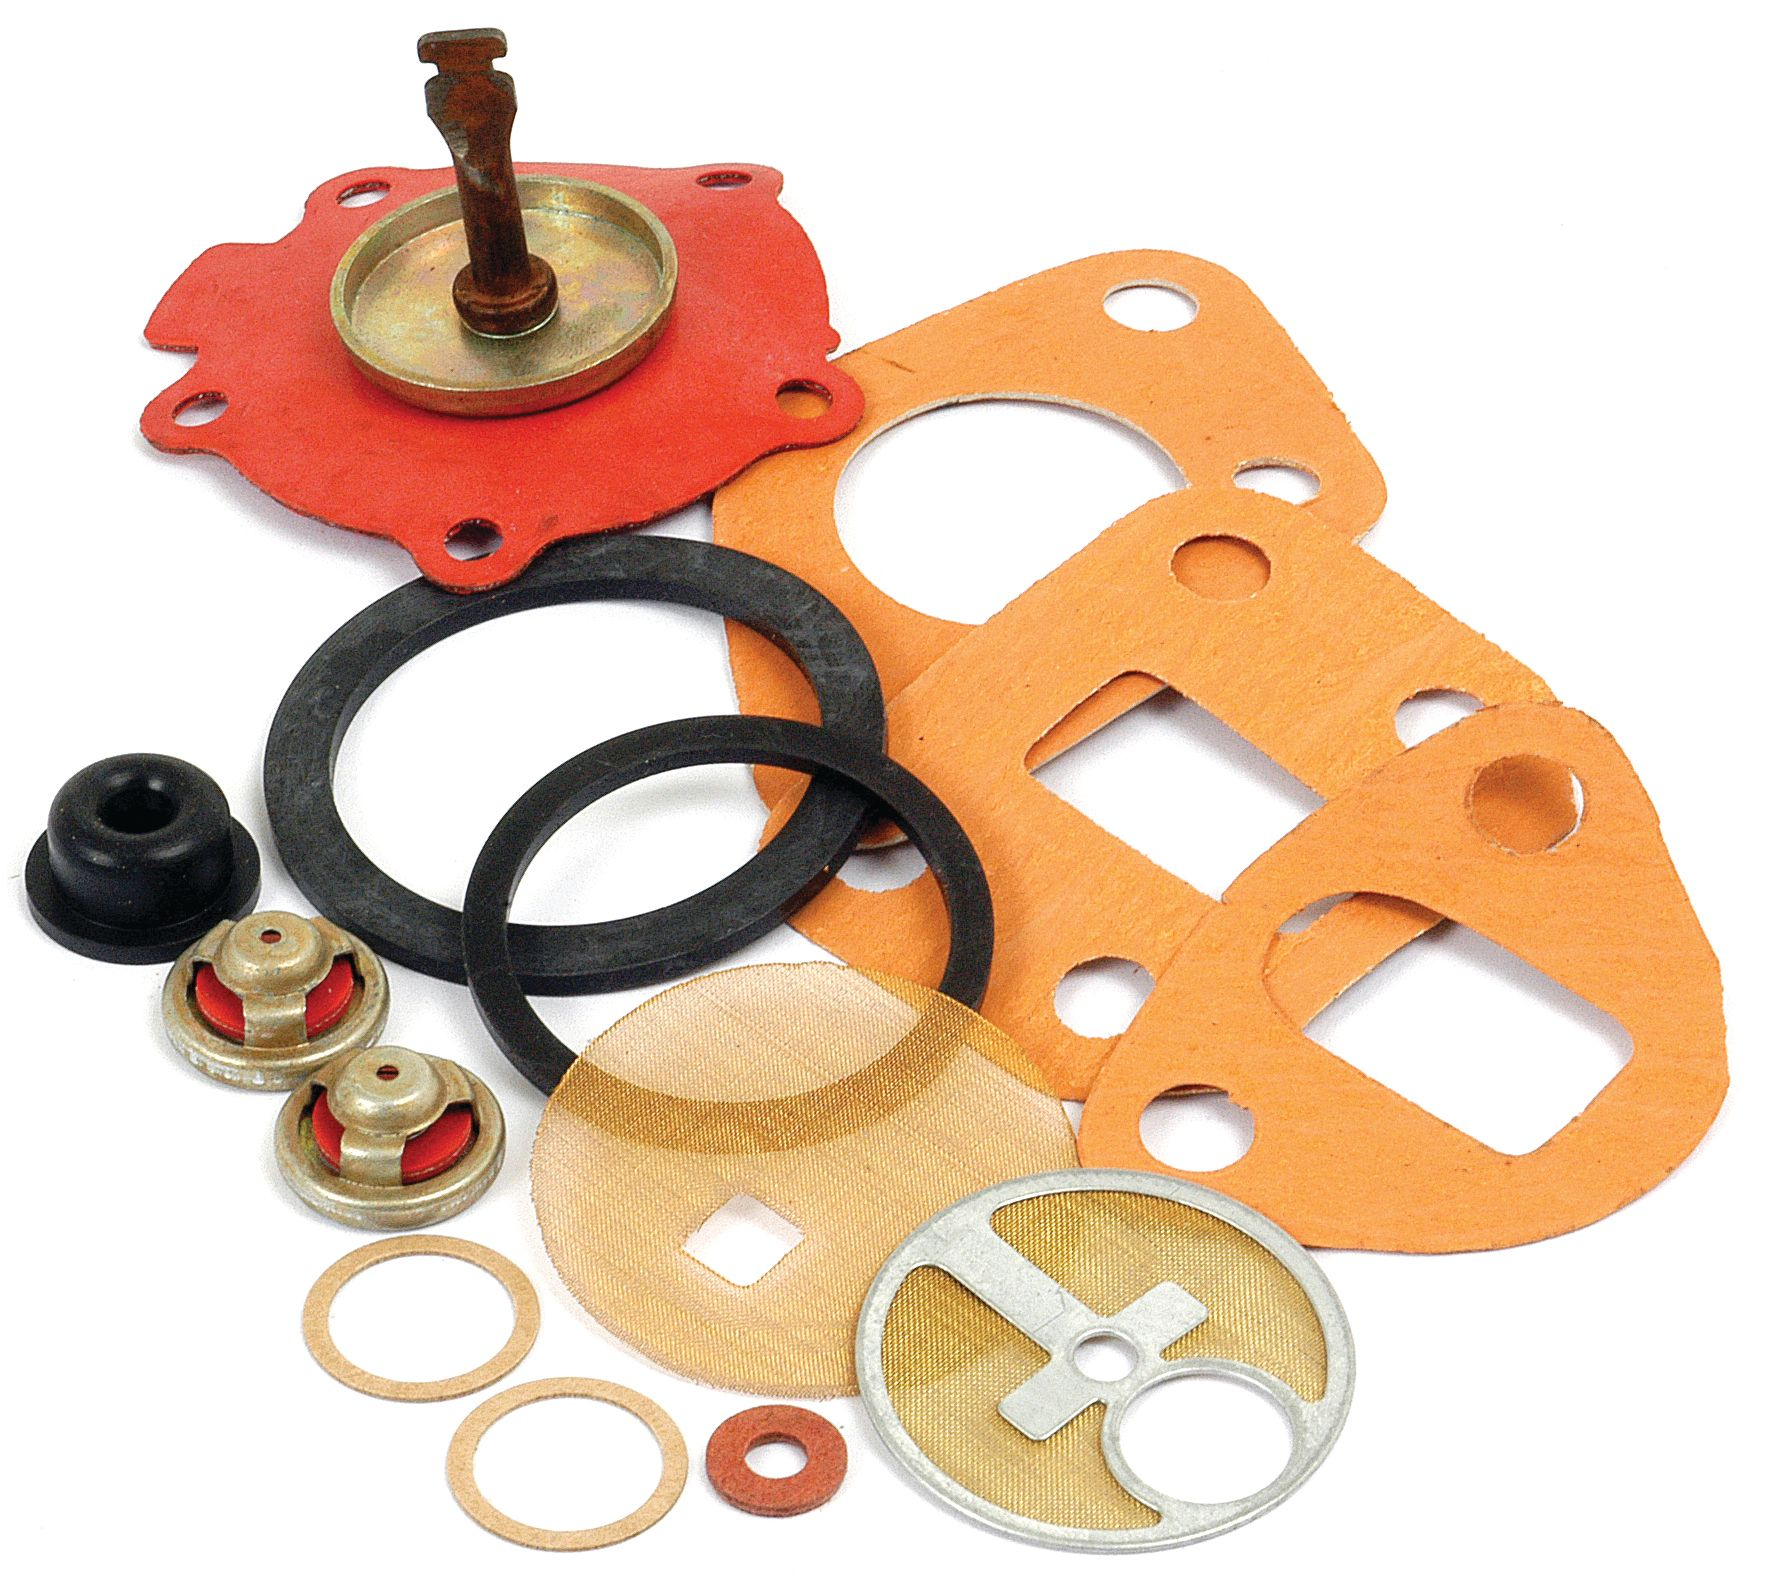 MERLO FUEL PUMP REPAIR KIT 40567